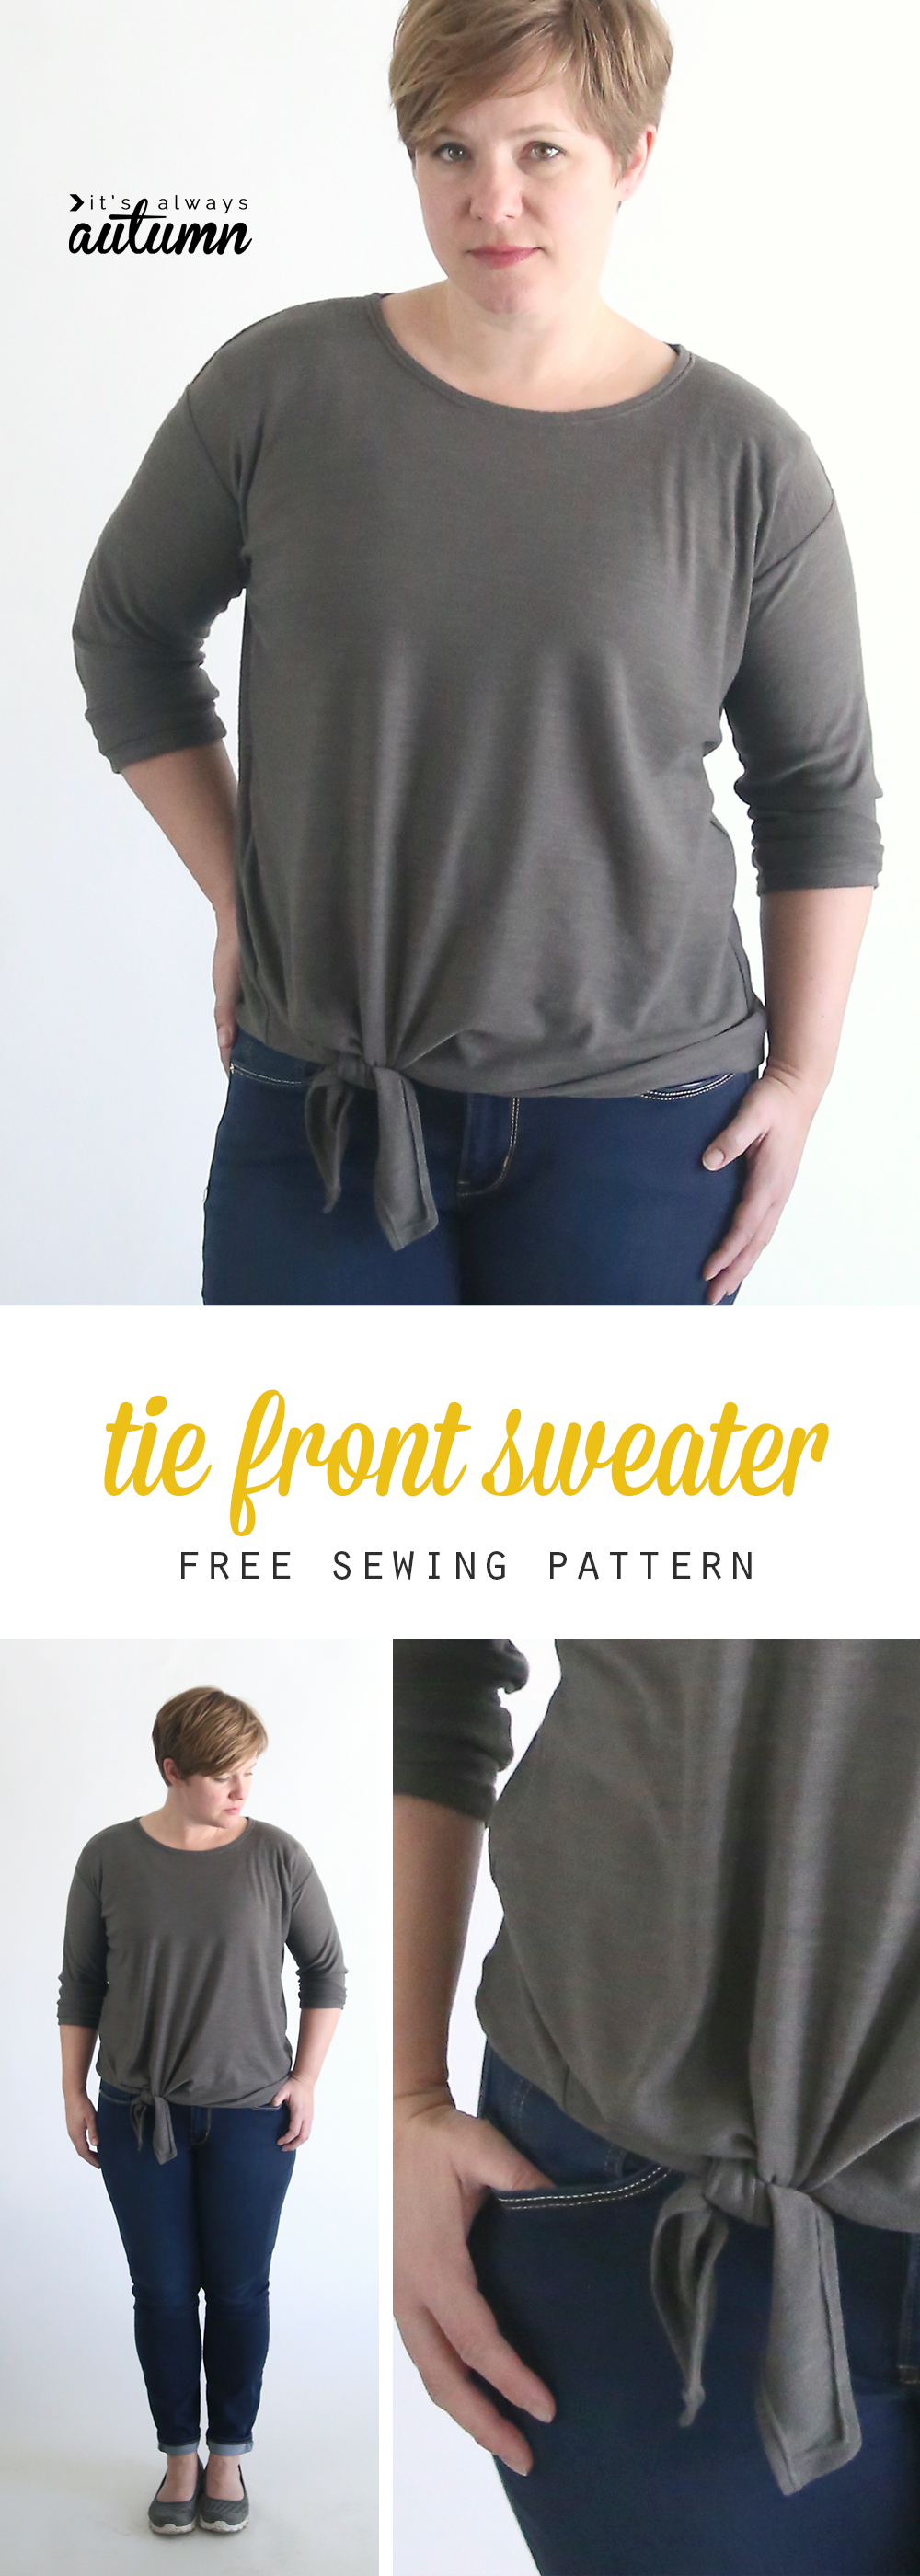 quality sewing tutorials tie front t shirt tutorial from